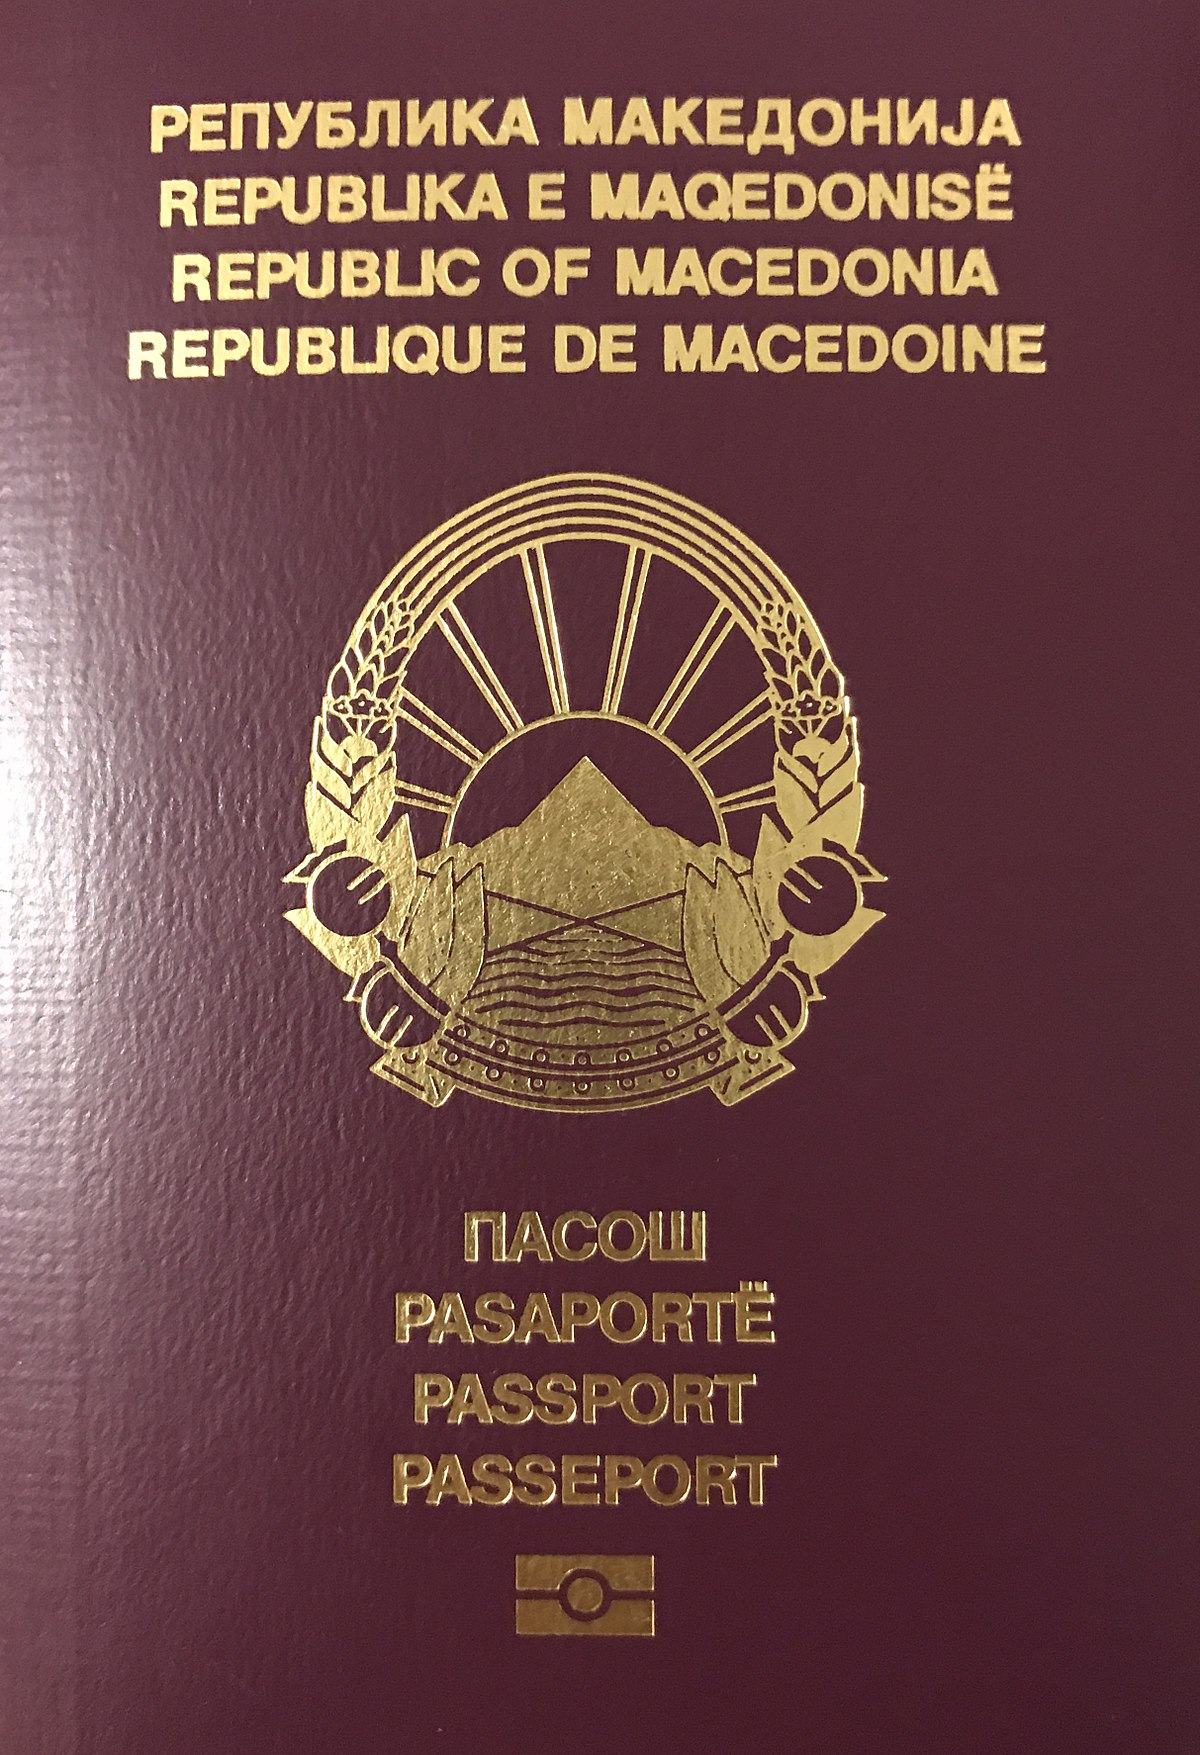 Macedonian passport  Wikipedia